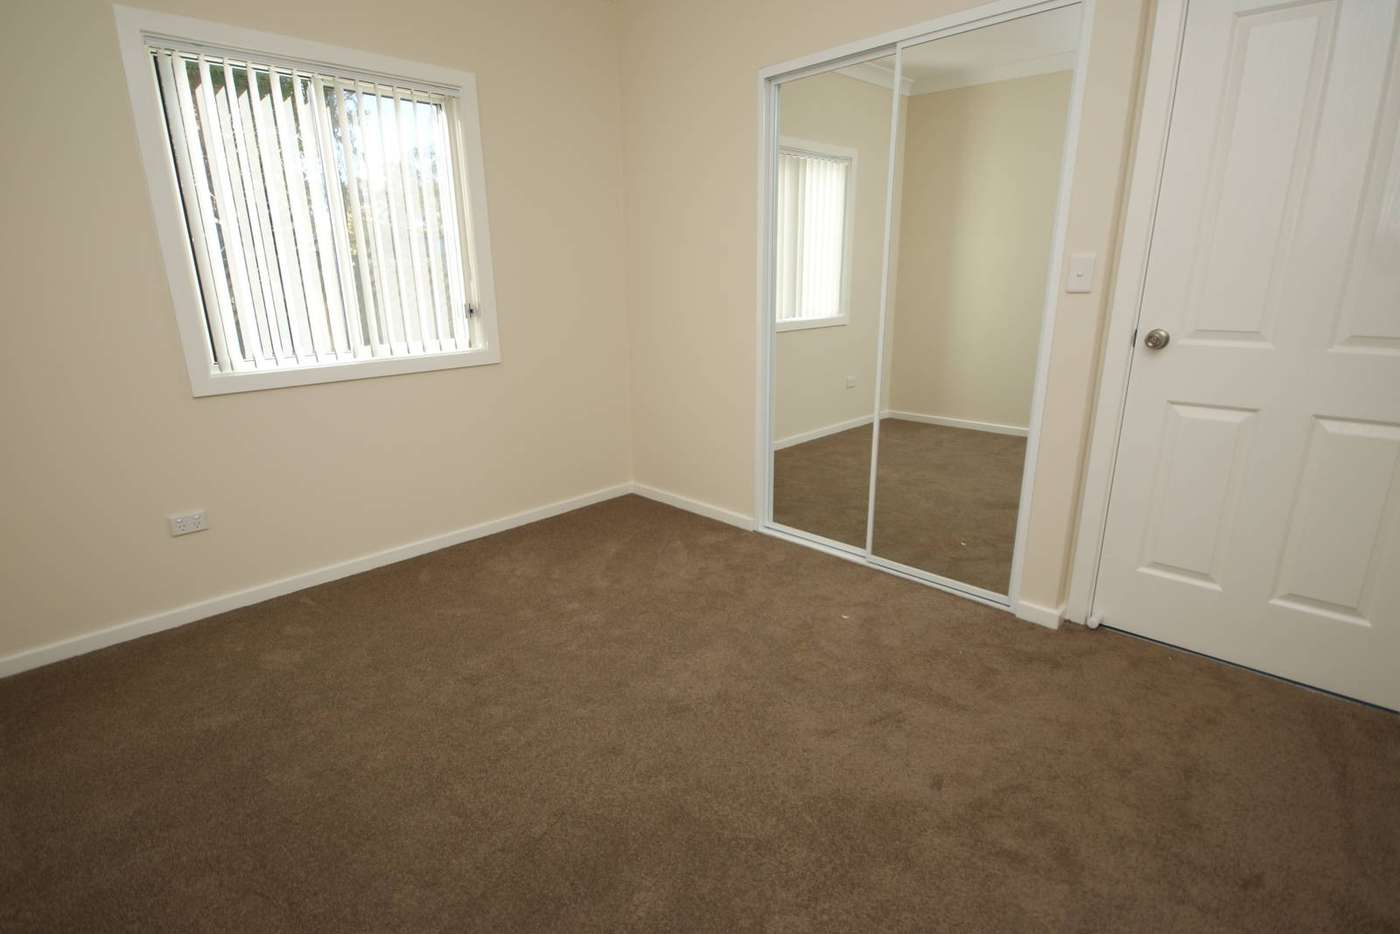 Seventh view of Homely house listing, 2a Parer Street, Kings Park NSW 2148